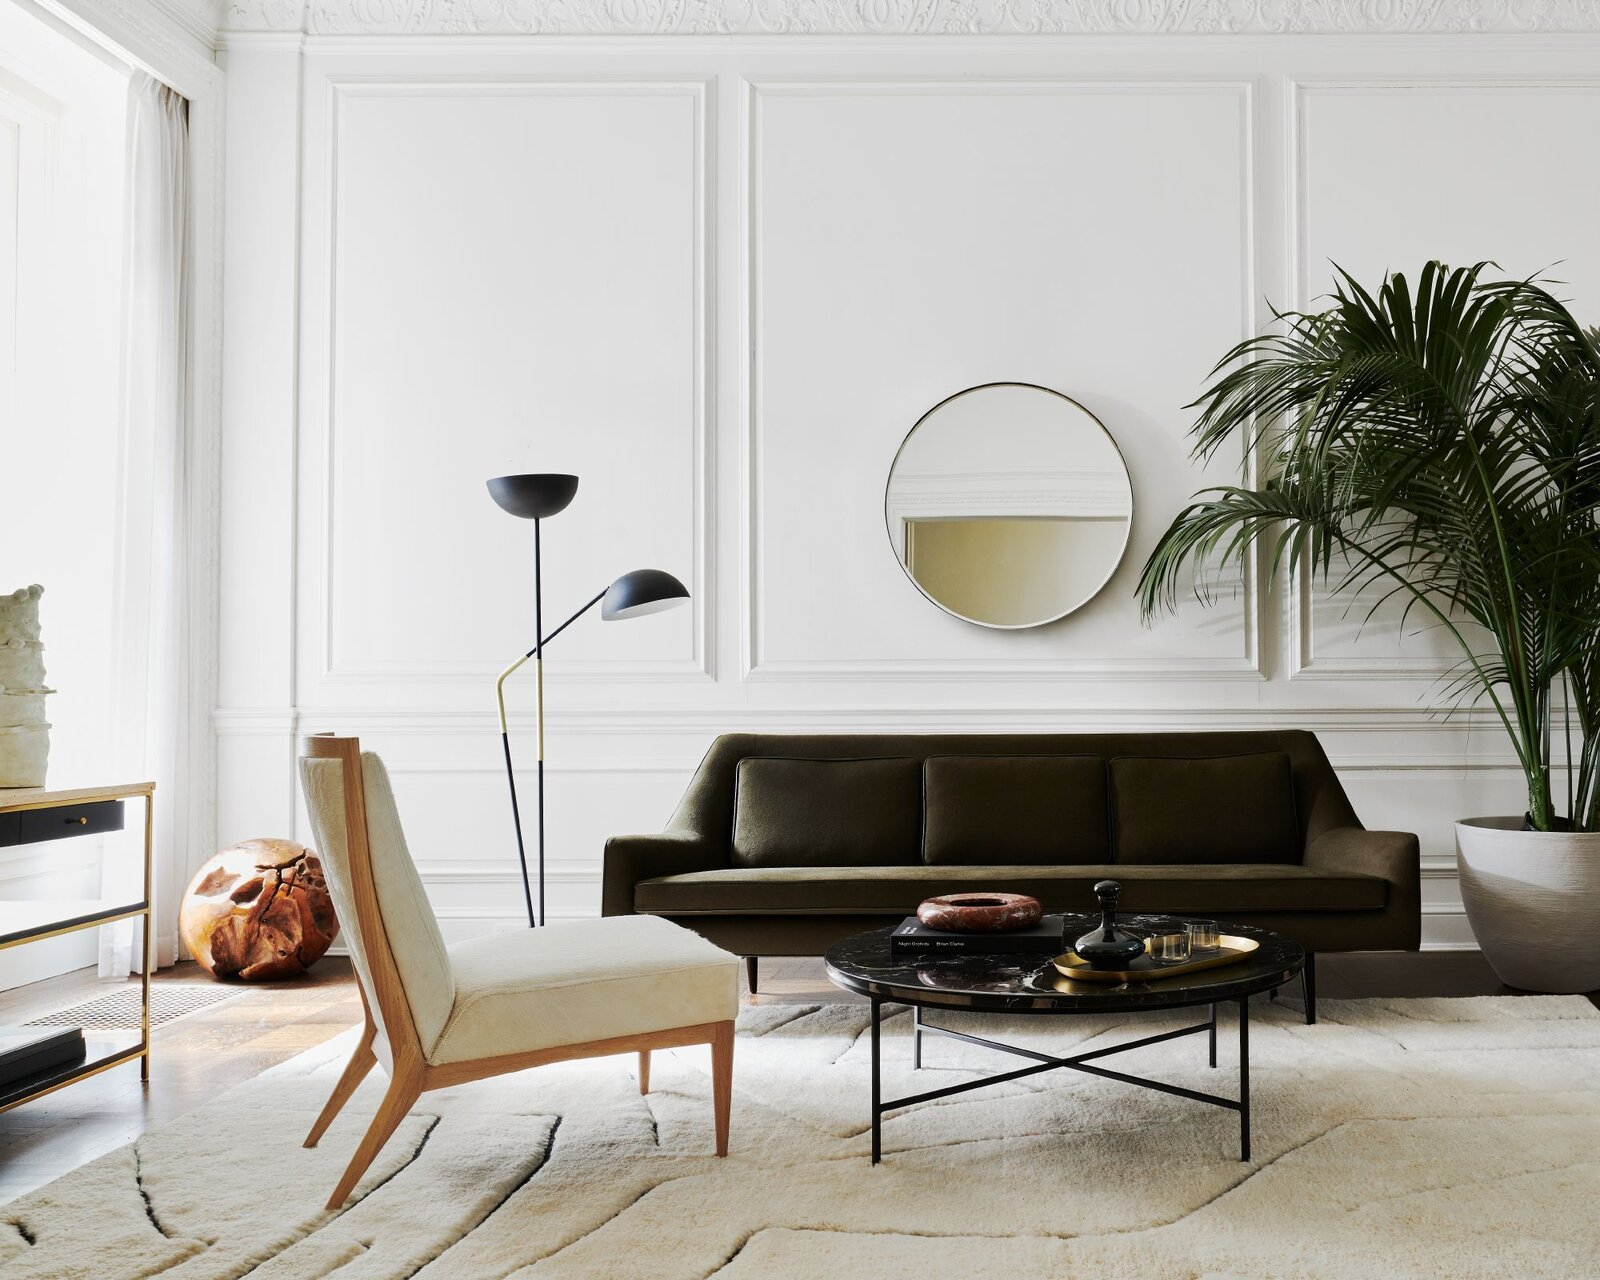 Living Room, Coffee Tables, Floor Lighting, Sofa, and Chair  Photo 1 of 7 in 5 Reasons Why American Modernist Paul McCobb's Designs Are Relevant Once Again